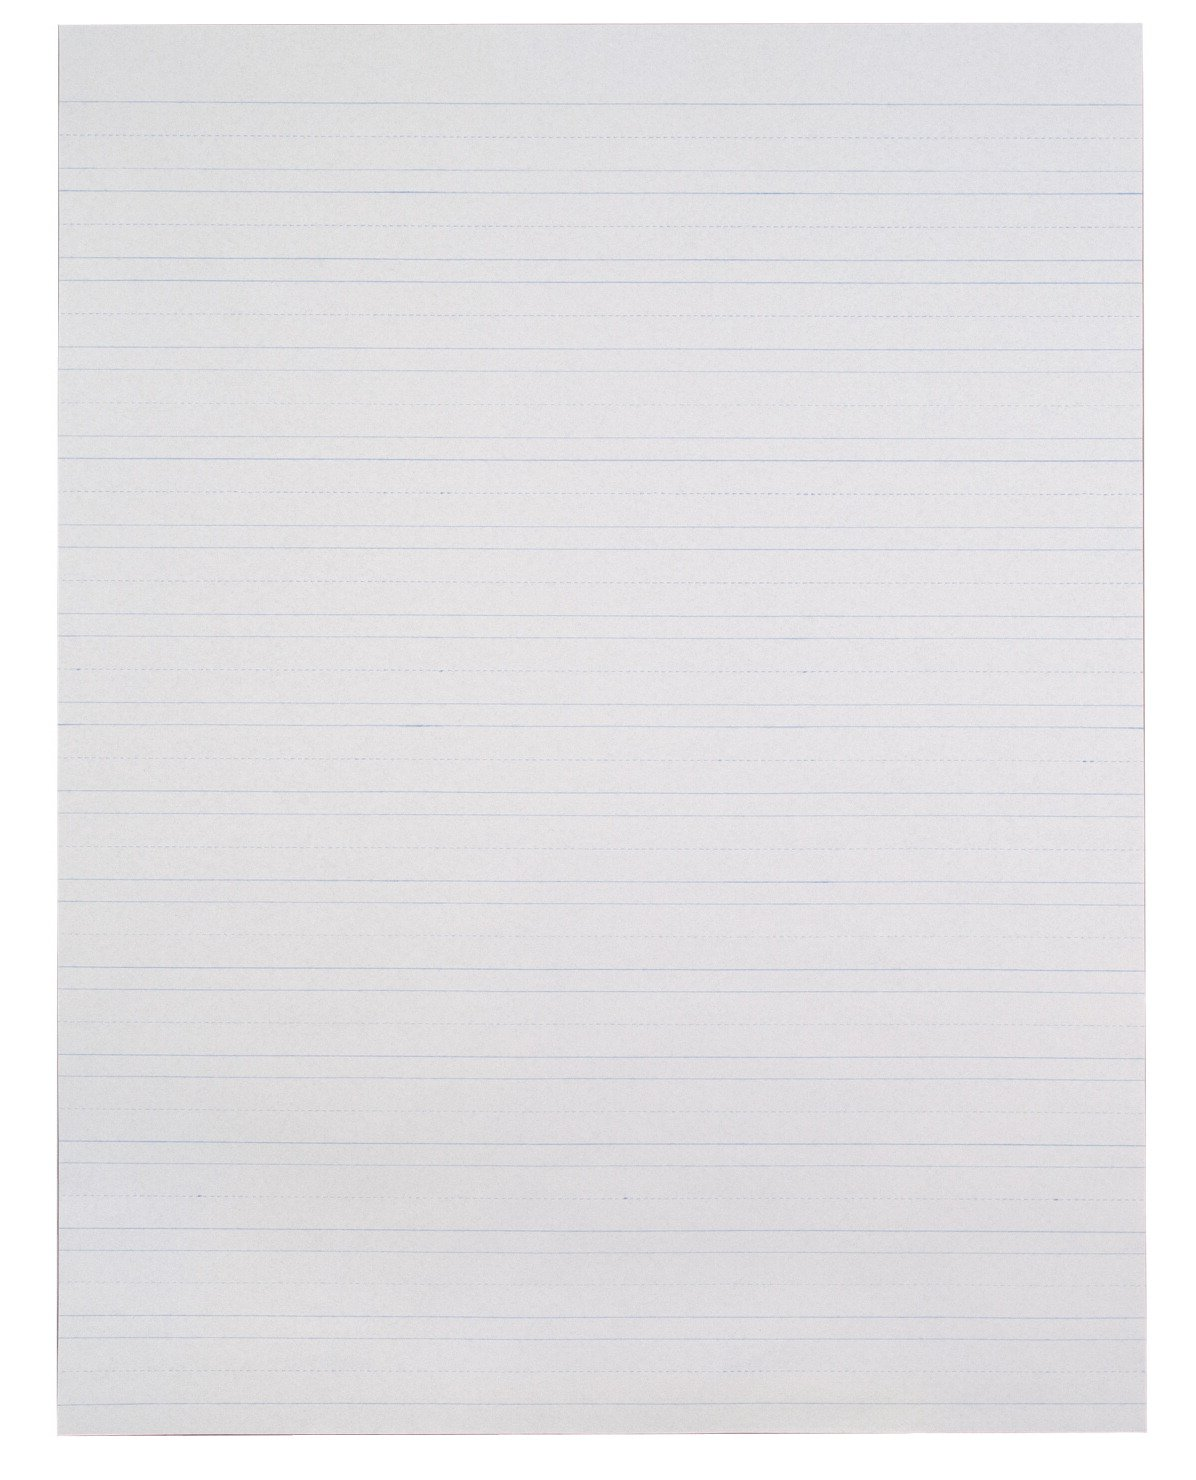 School Smart Primary Chart Paper, Skip-A-Line, 24 x 32 Inches, White, 500 Sheets